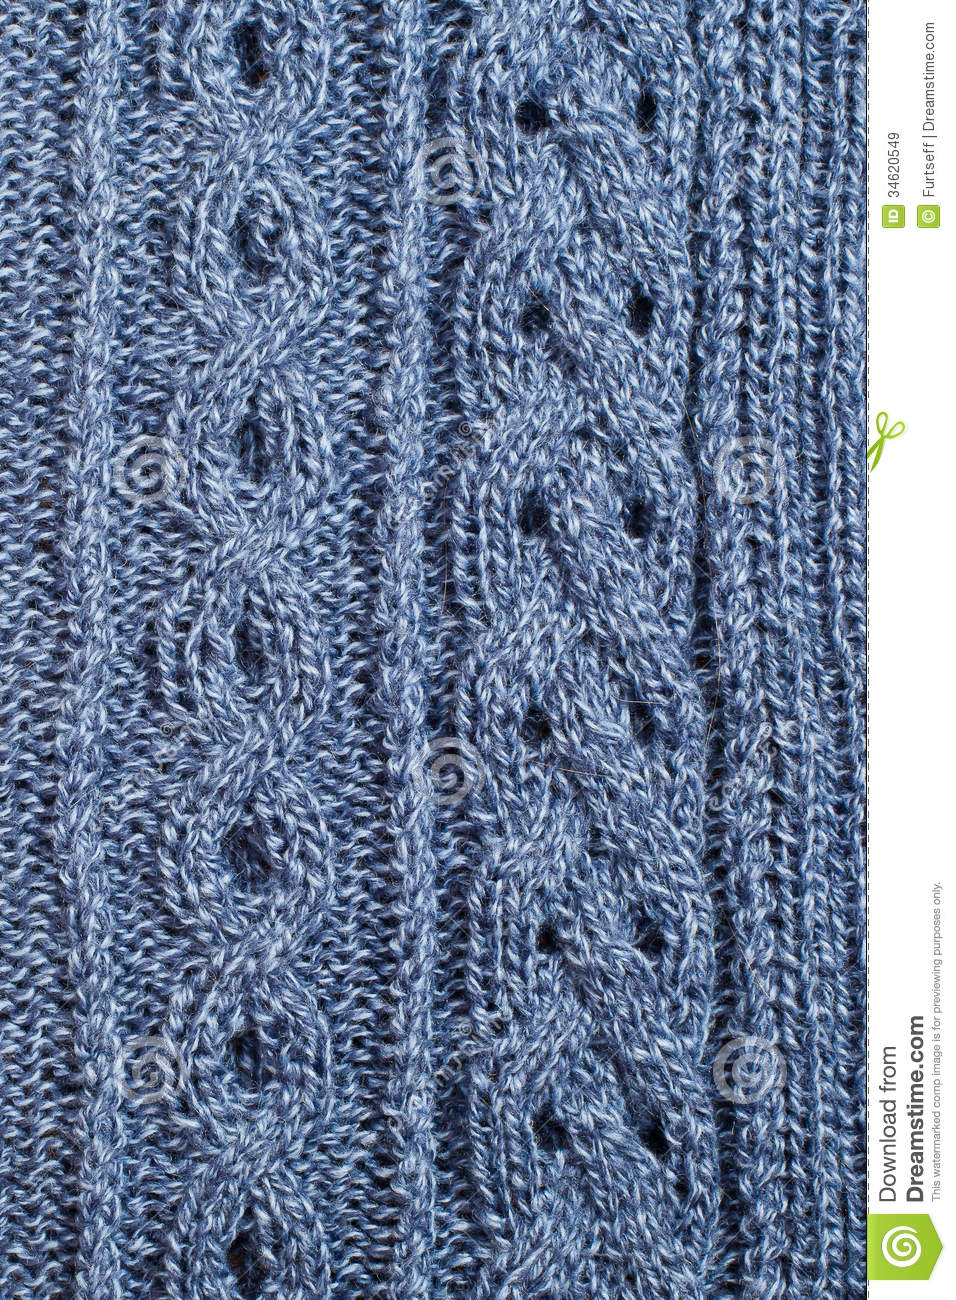 Knitting Stitches A To Z : Background Of Knitting Patterns Royalty Free Stock Images - Image: 34620549